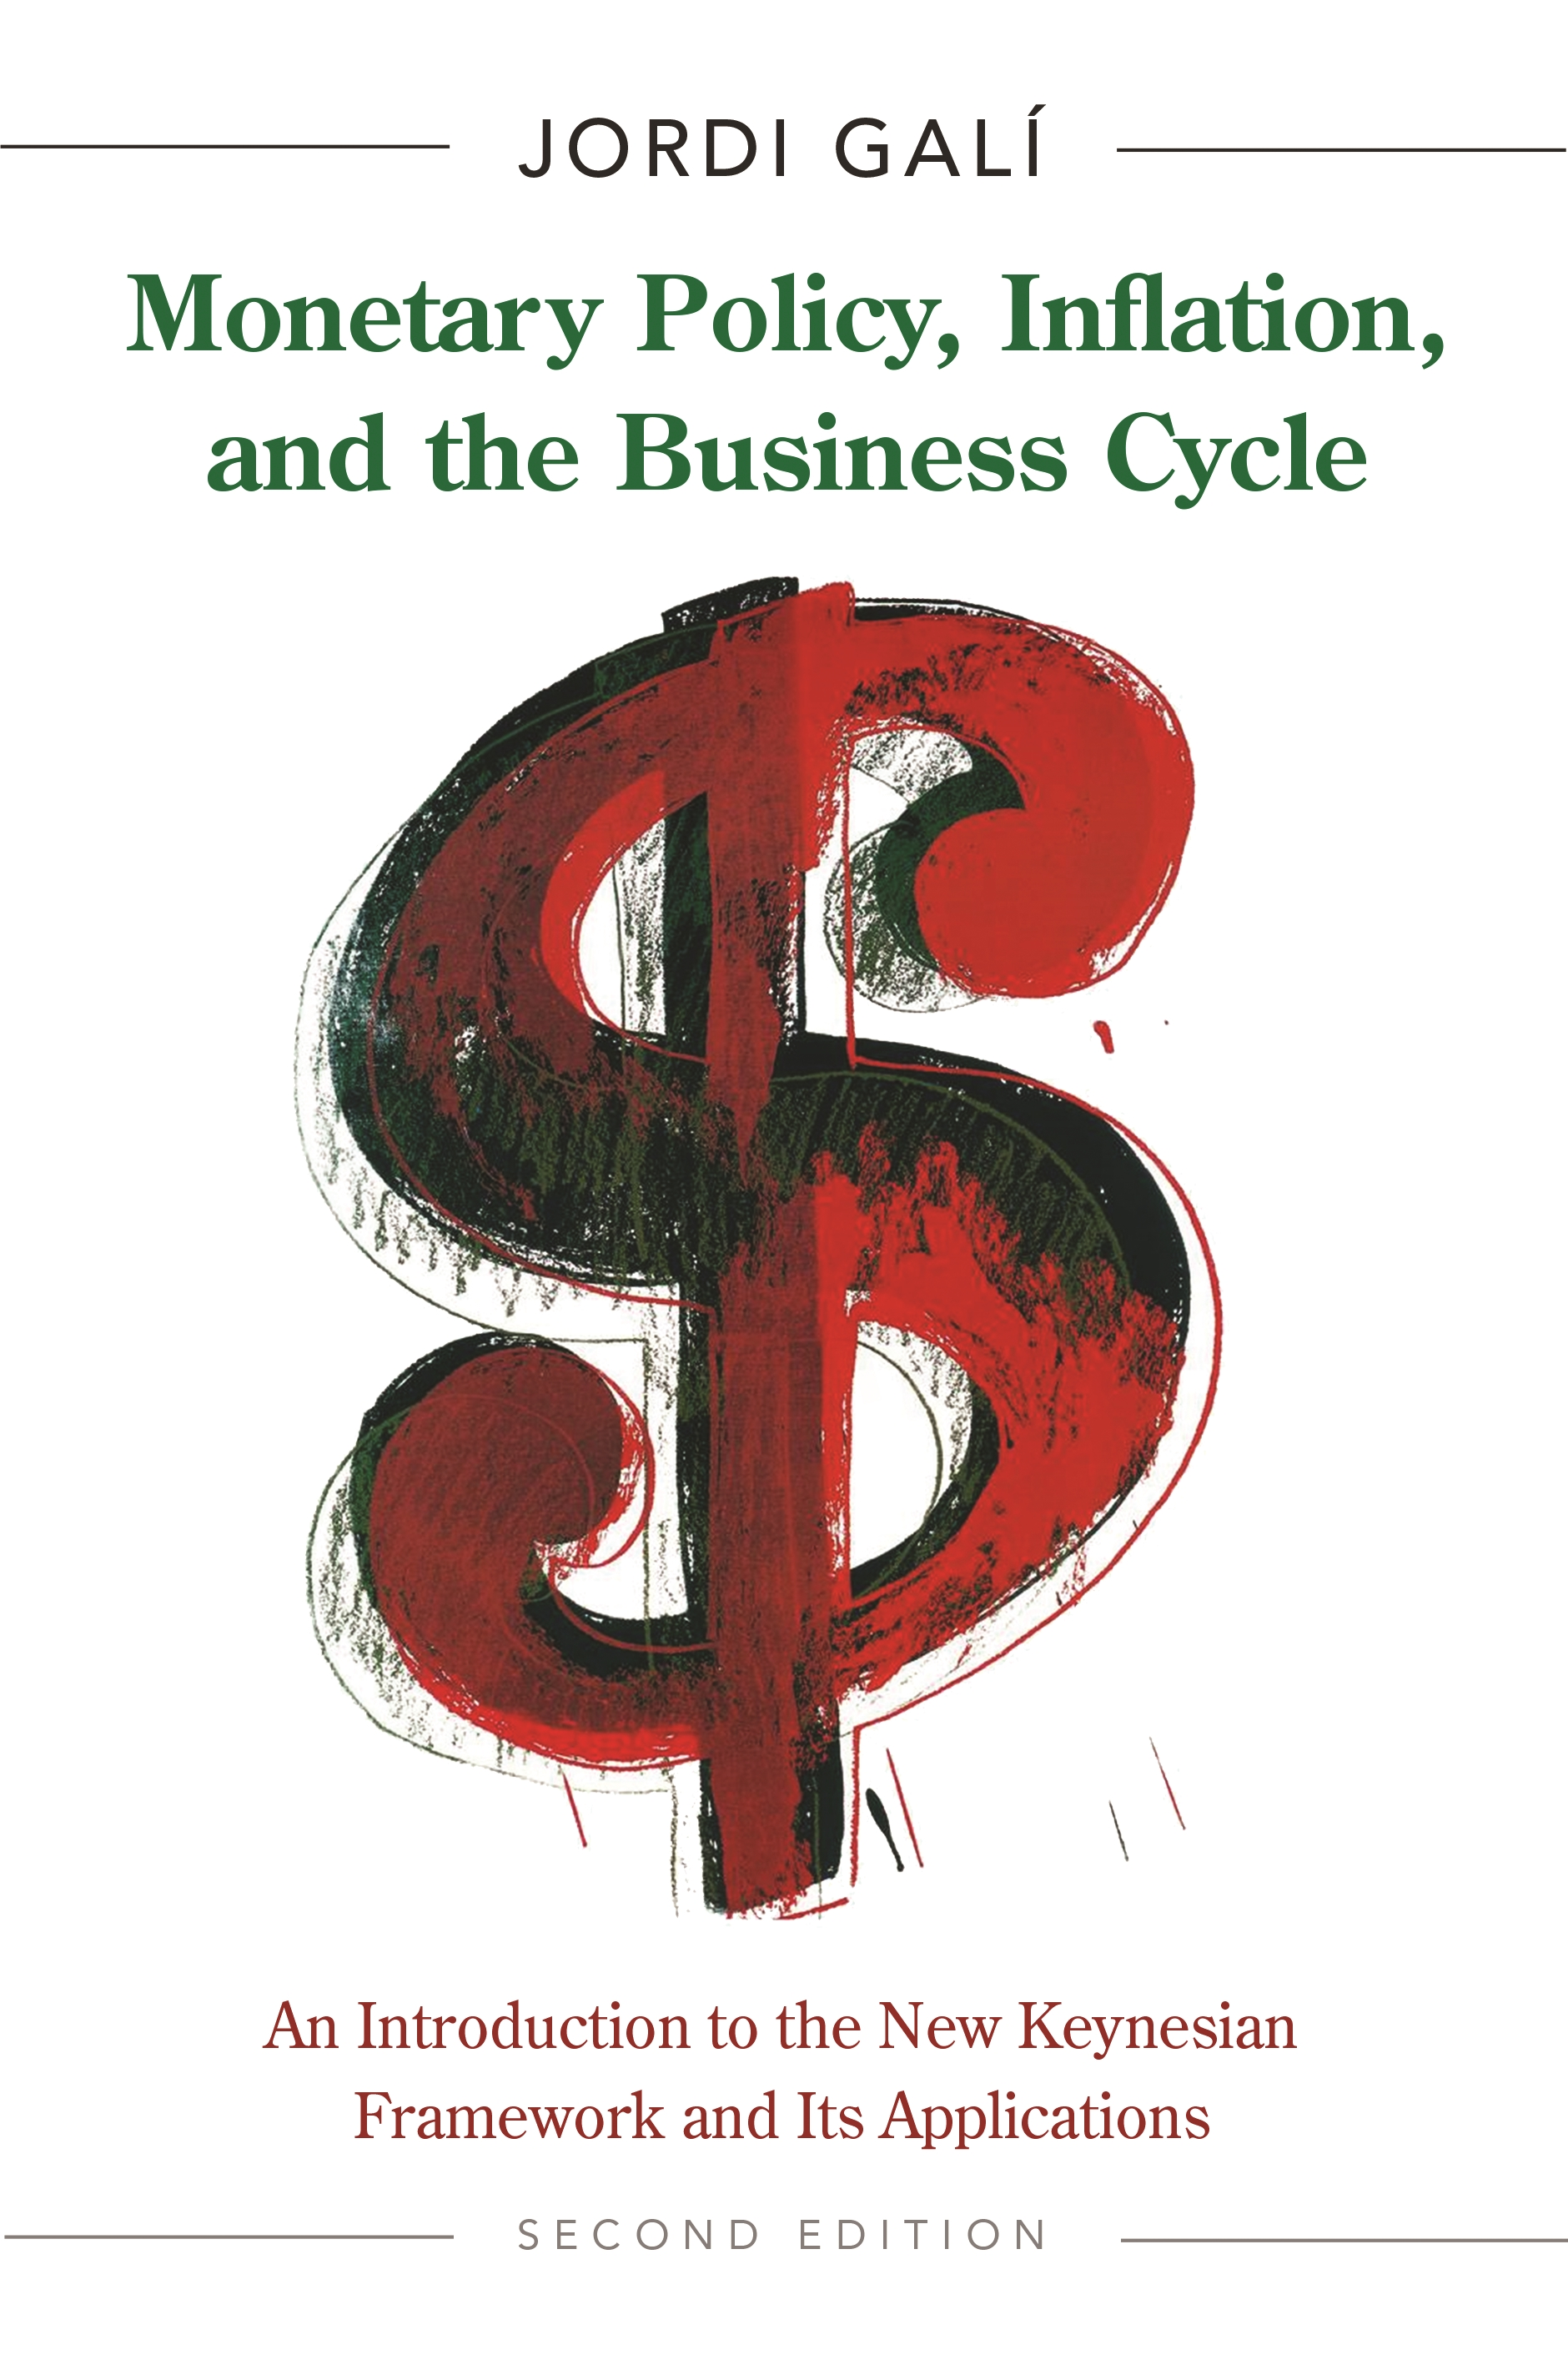 Download Ebook Monetary Policy, Inflation, and the Business Cycle (2nd ed.) by Jordi Galí Pdf